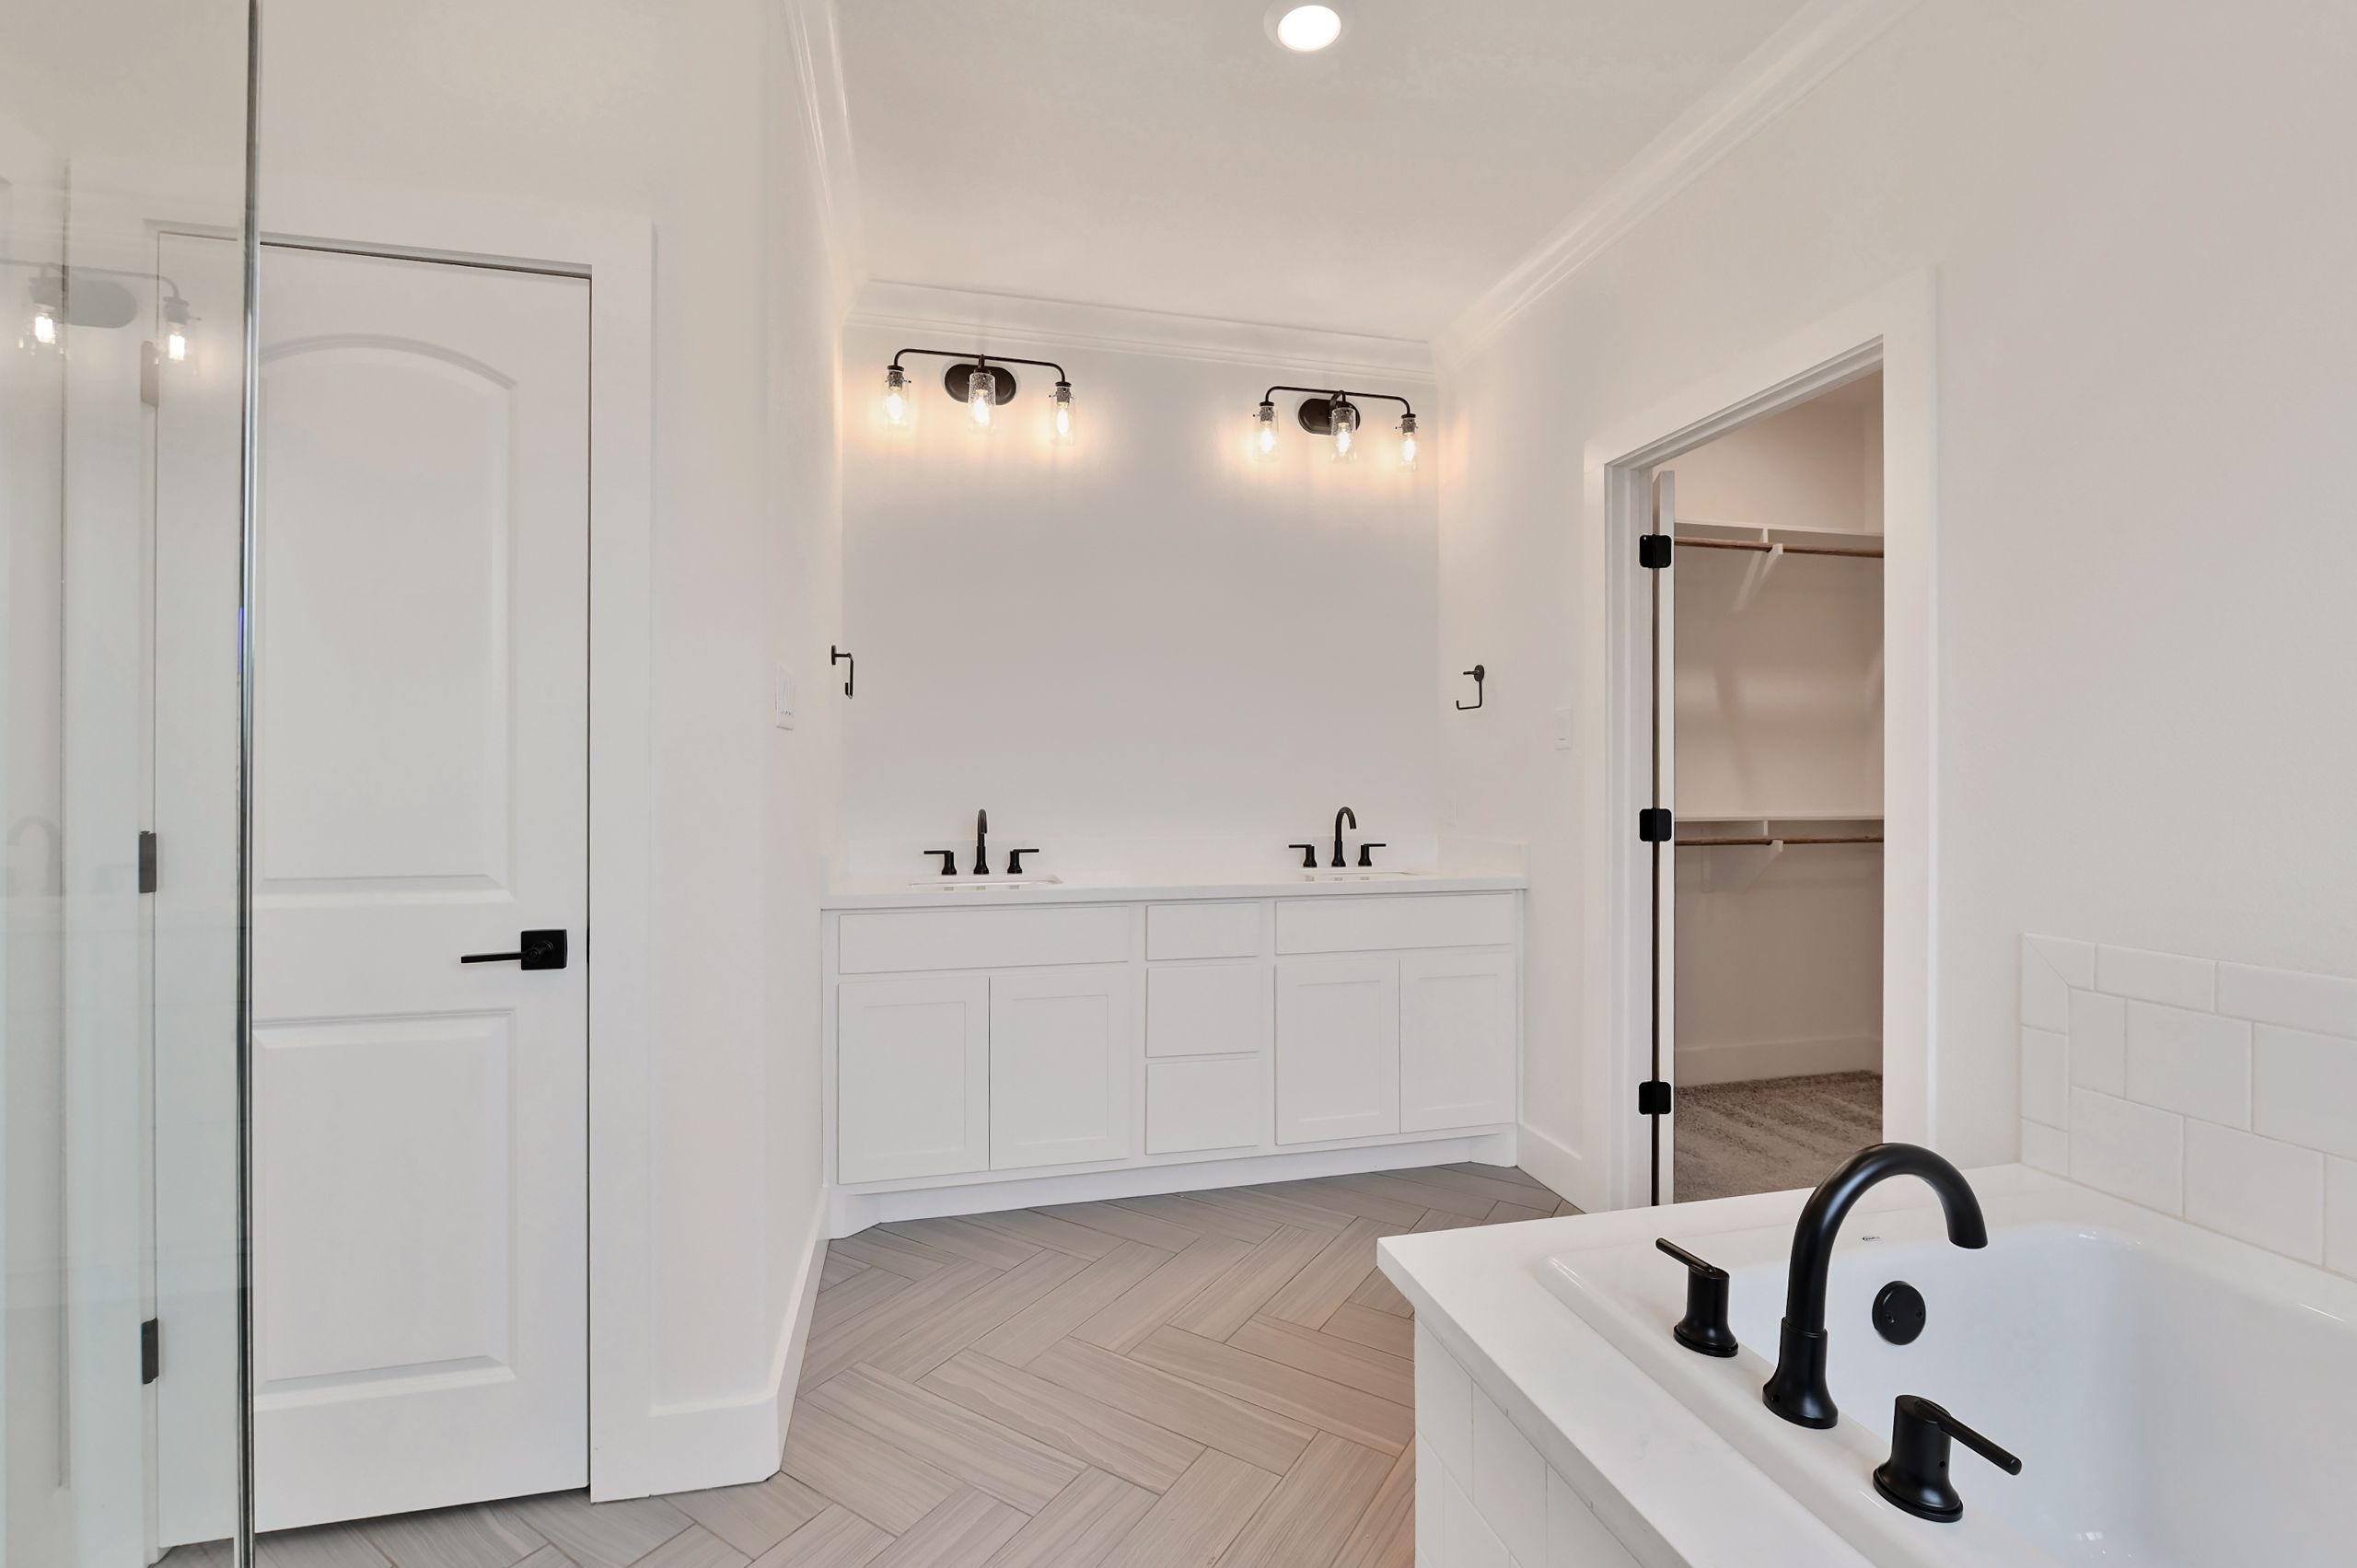 Bathroom featured in the Darwood By Blackstone Homes in Bryan-College Station, TX